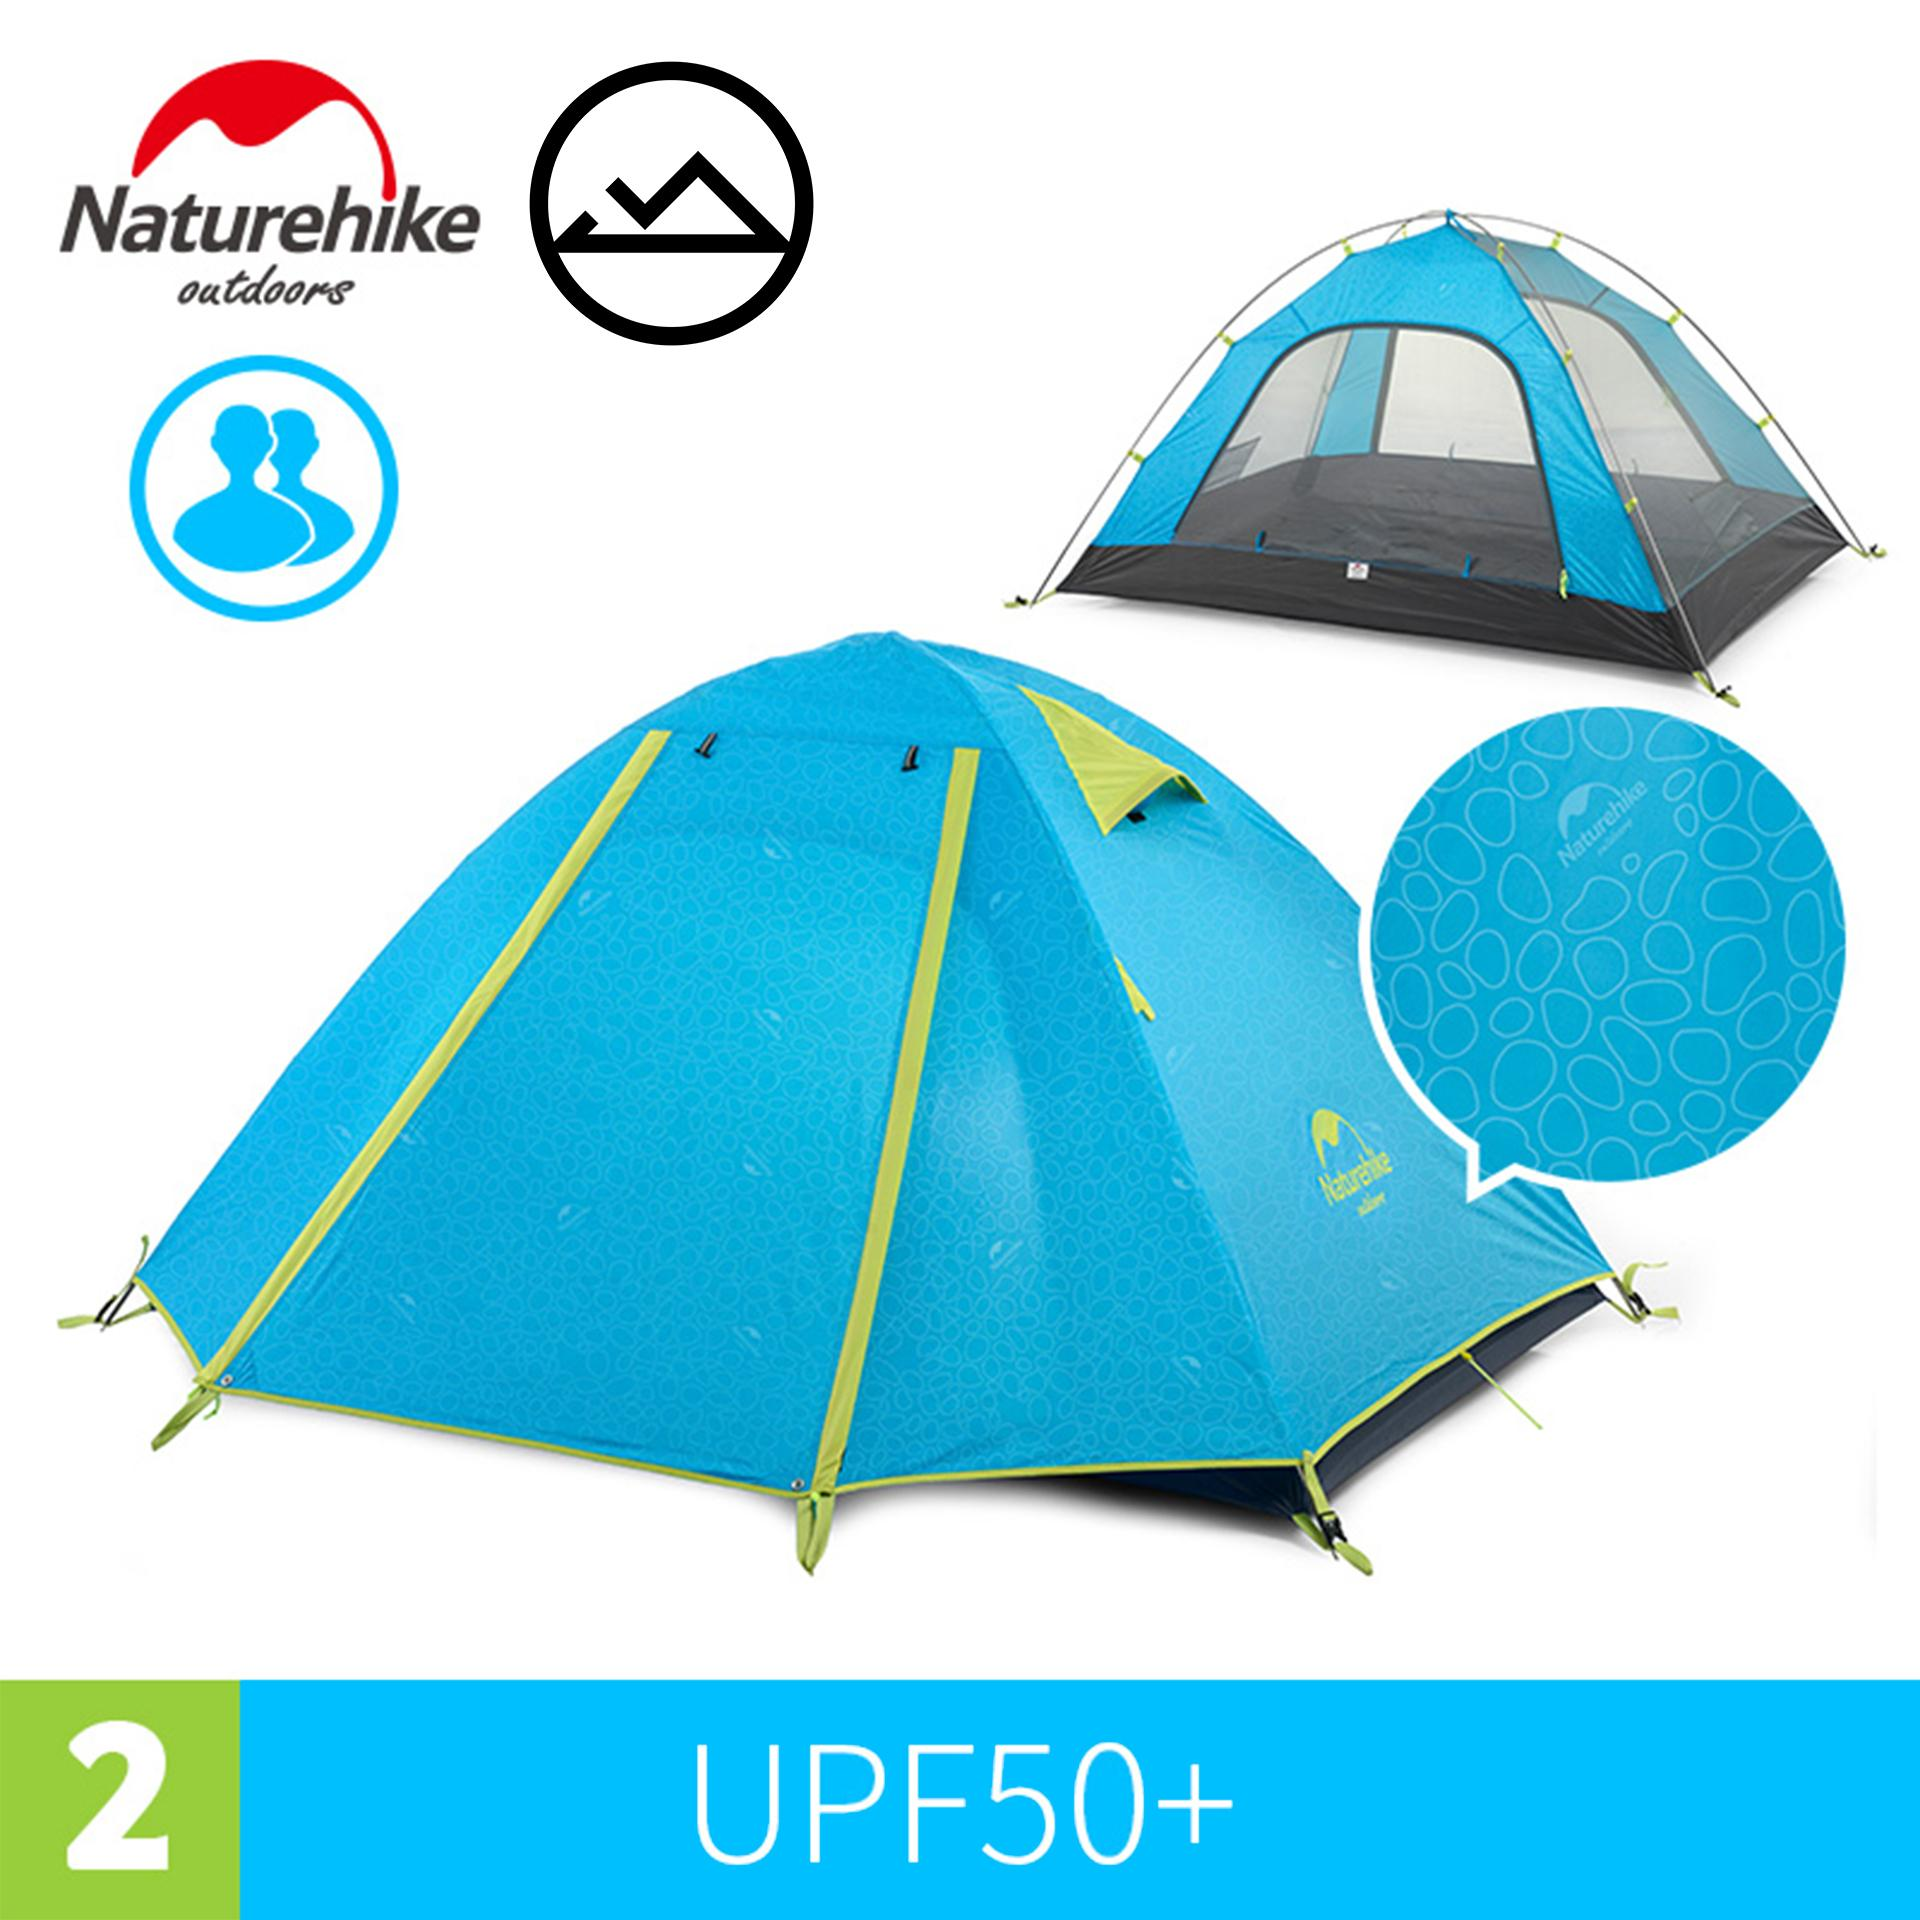 NatureHike Philippines: NatureHike price list - Sleeping Bags, Tents